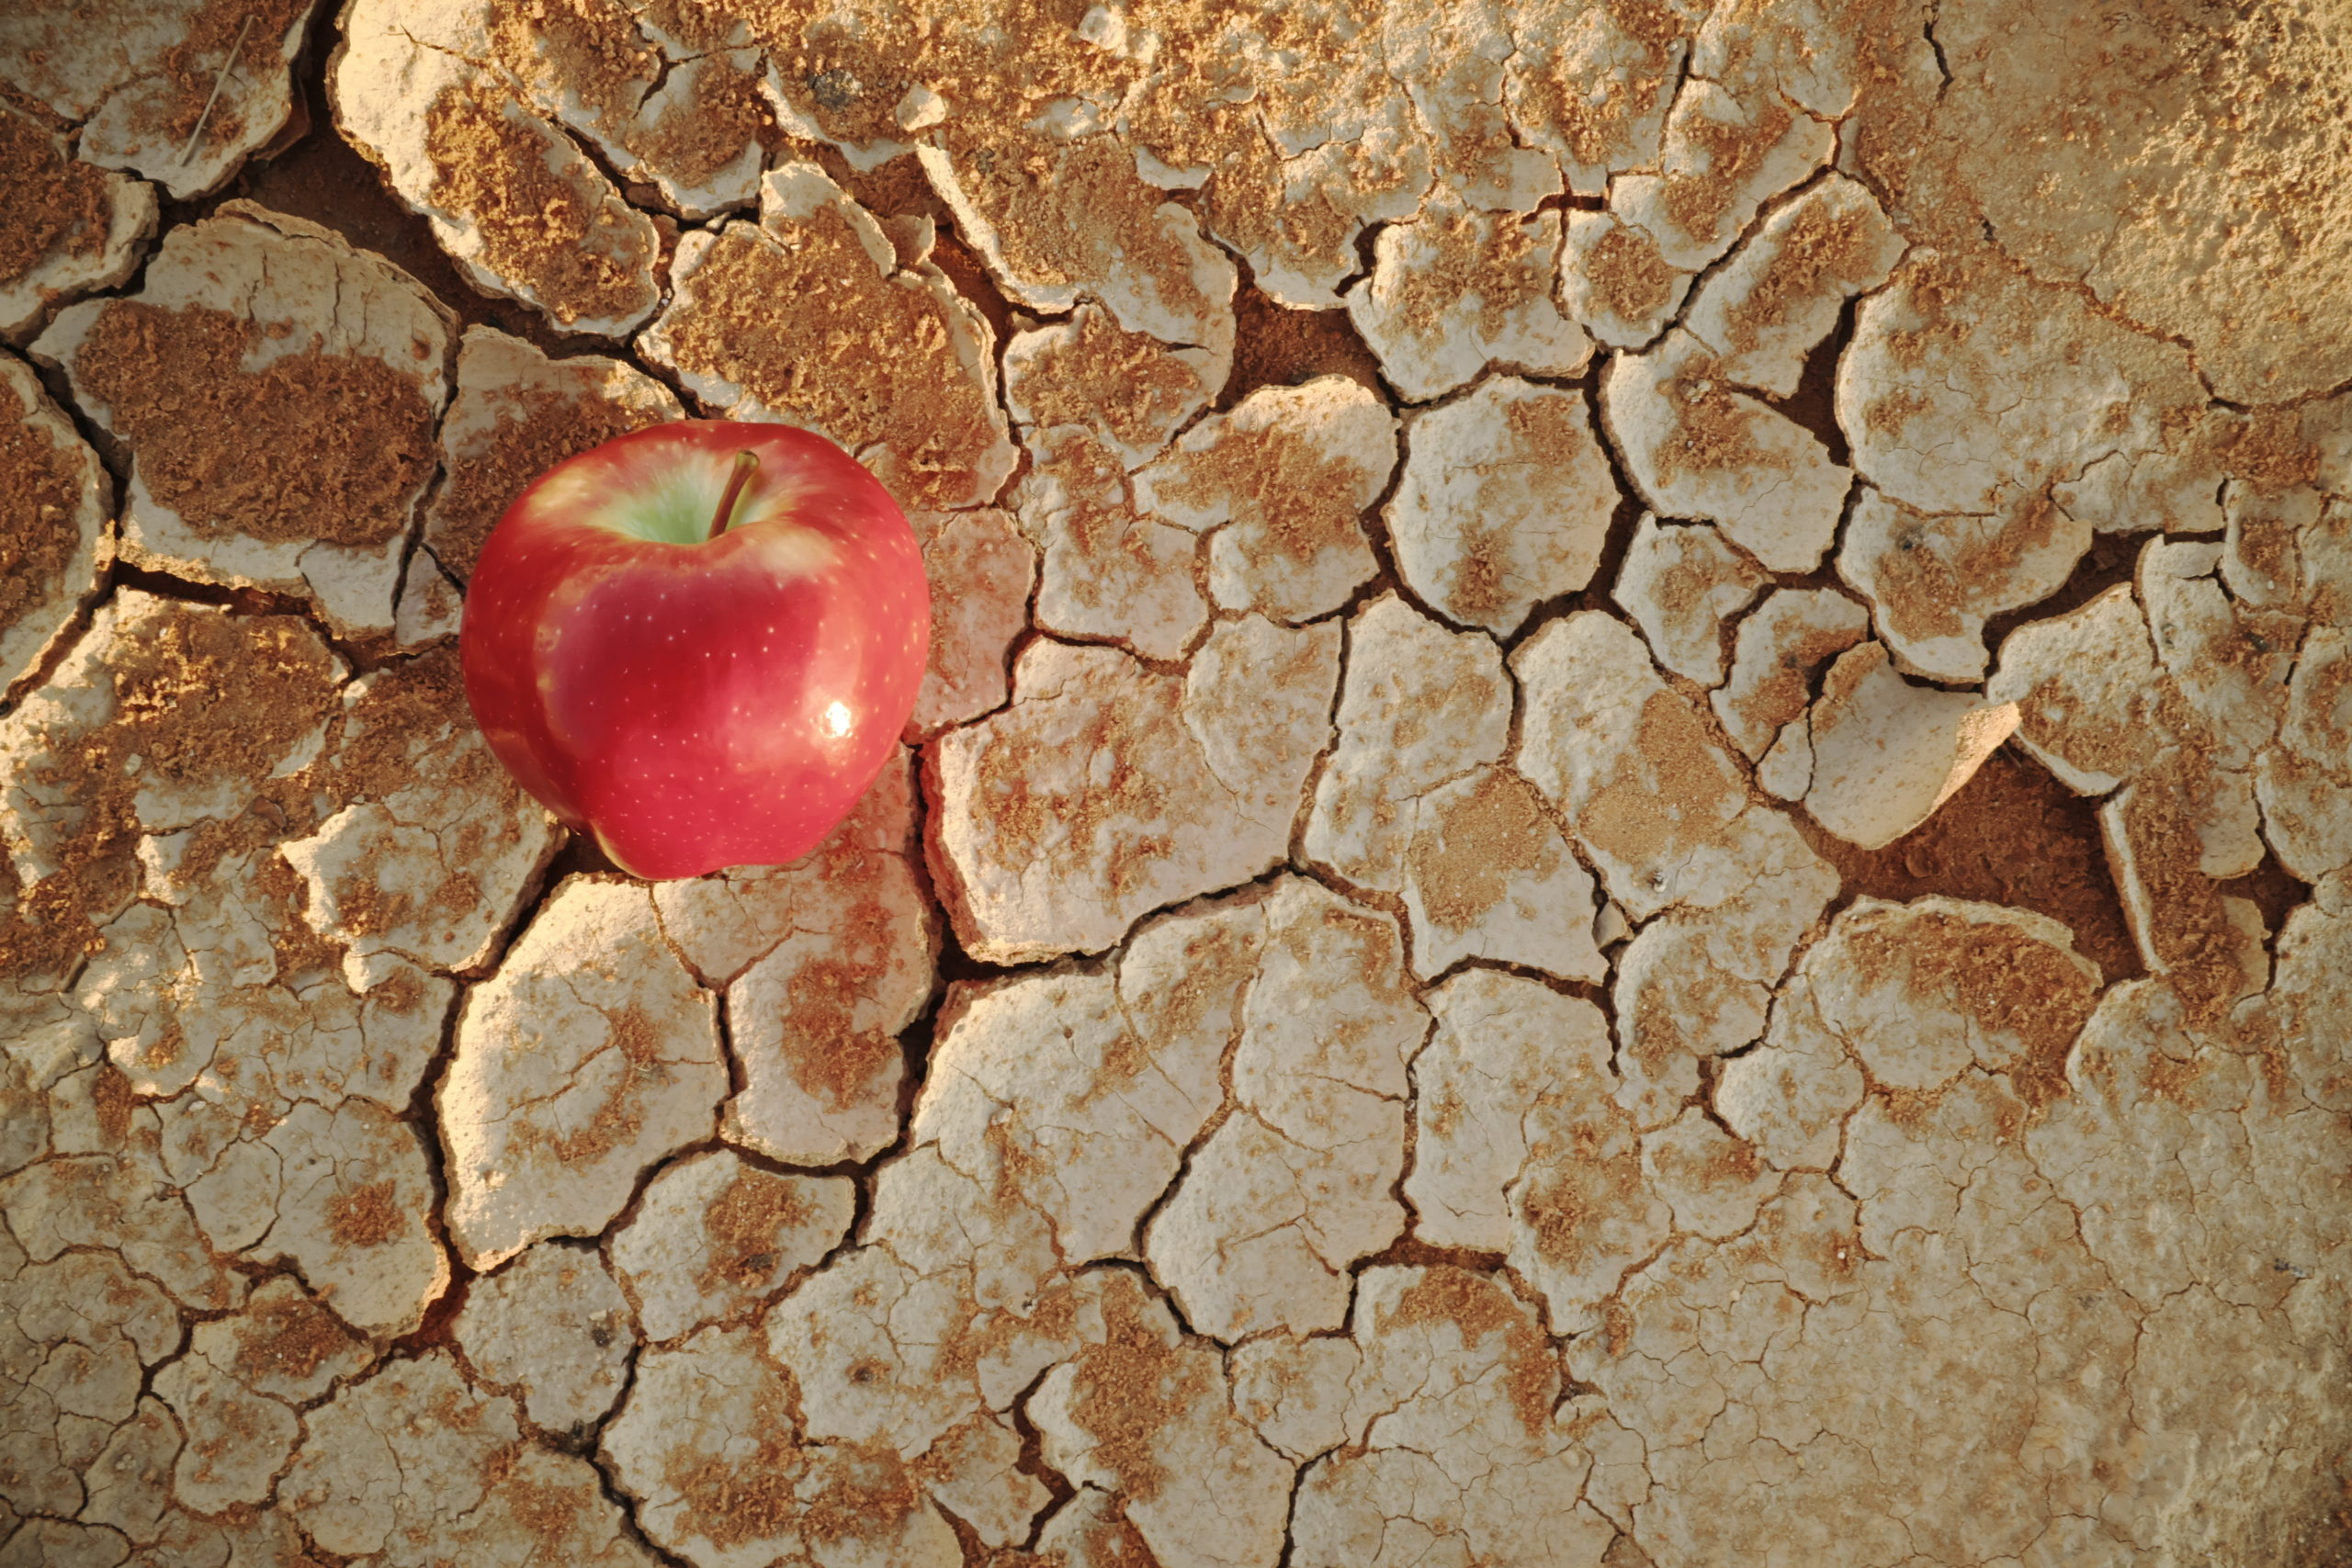 An Apple On A Dry Cracked Desert Soil. Water Shortage, Food Insecurity, Crisis, Hunger And Agriculture Concept.